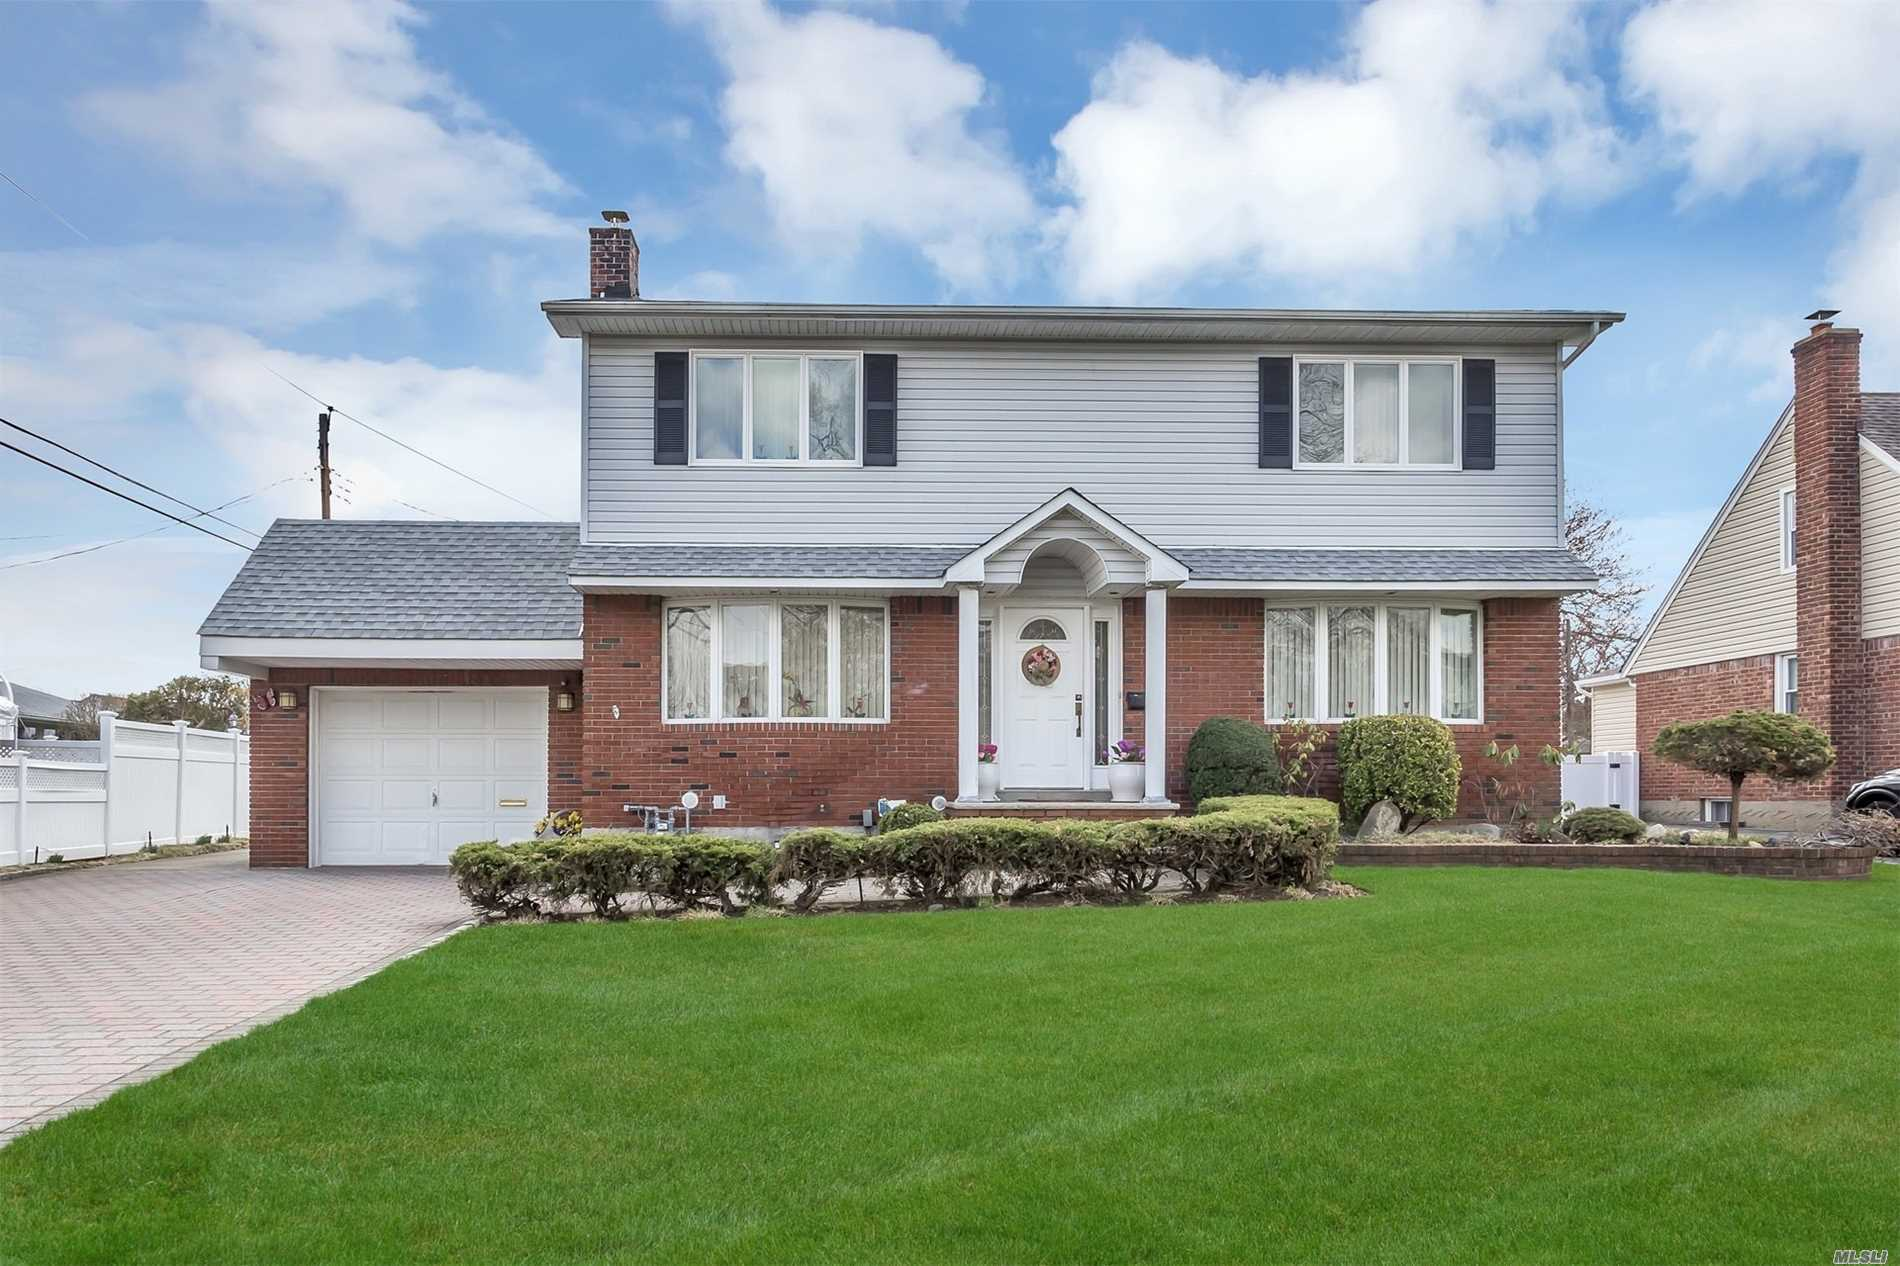 1038 Maple Ln - New Hyde Park, New York